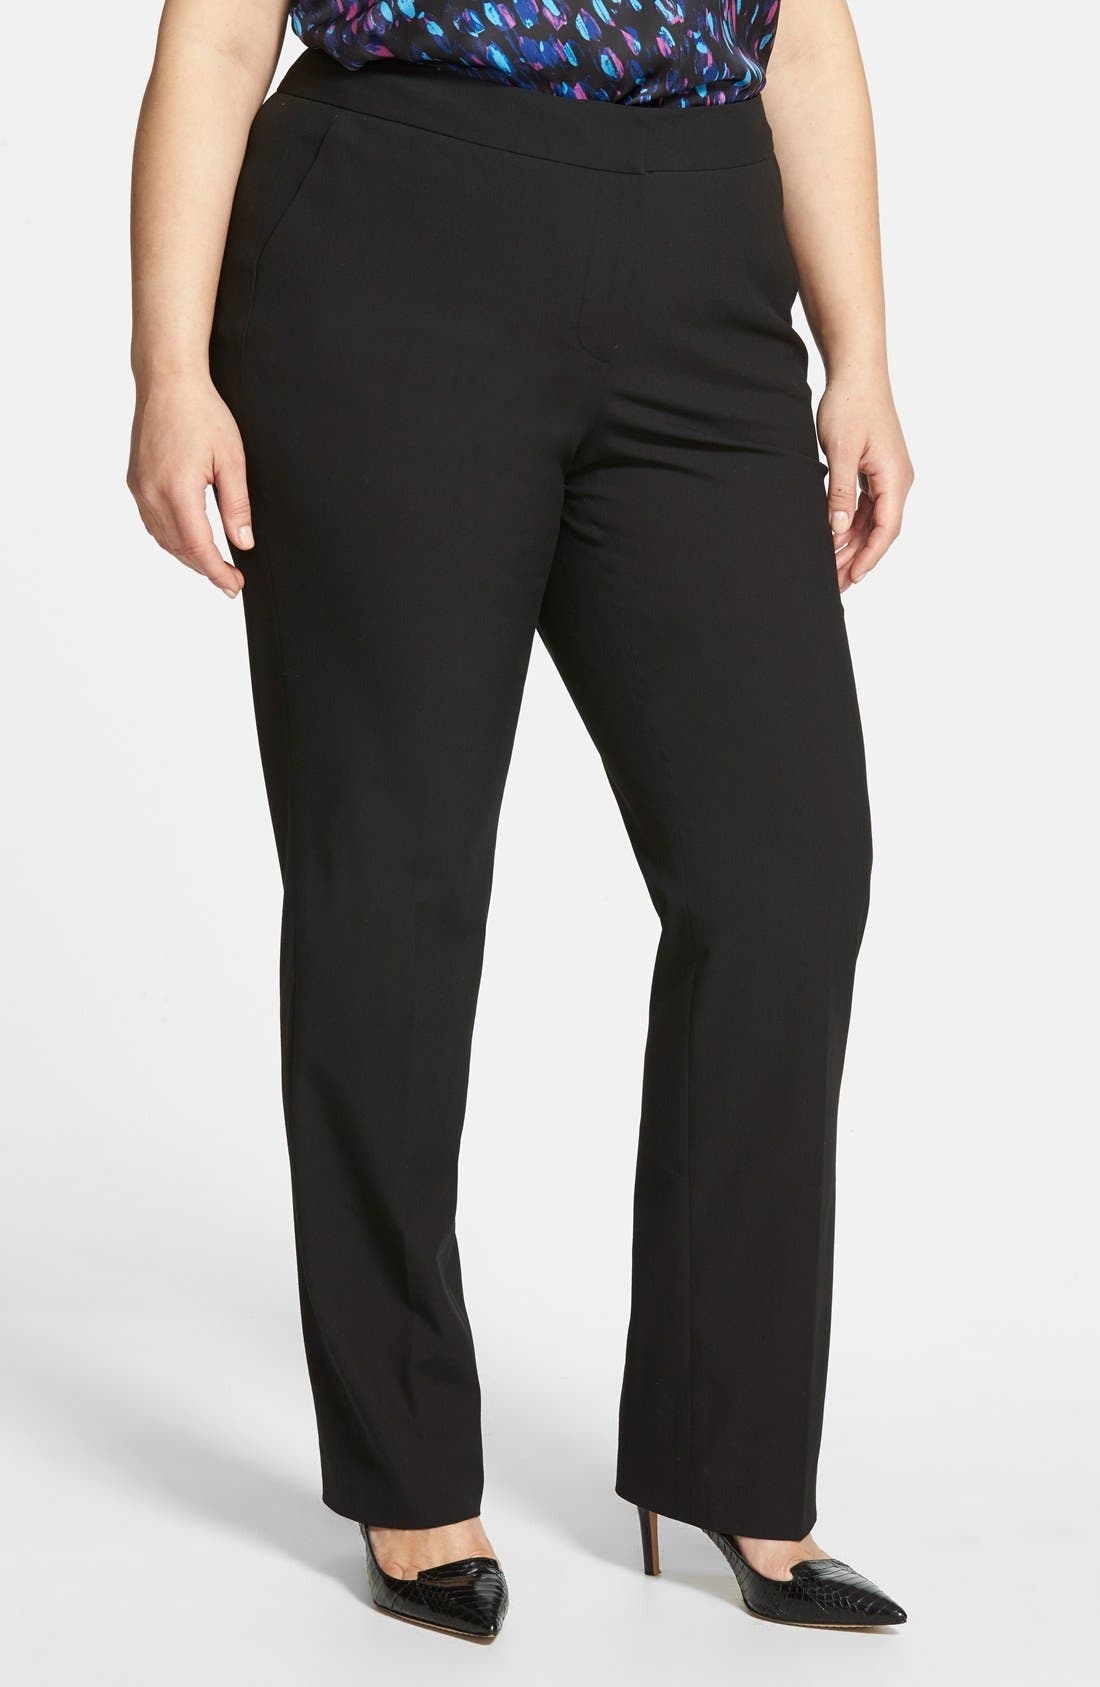 Alternate Image 1 Selected - Sejour 'Ela' Modern Fit Pants (Plus Size & Petite Plus)